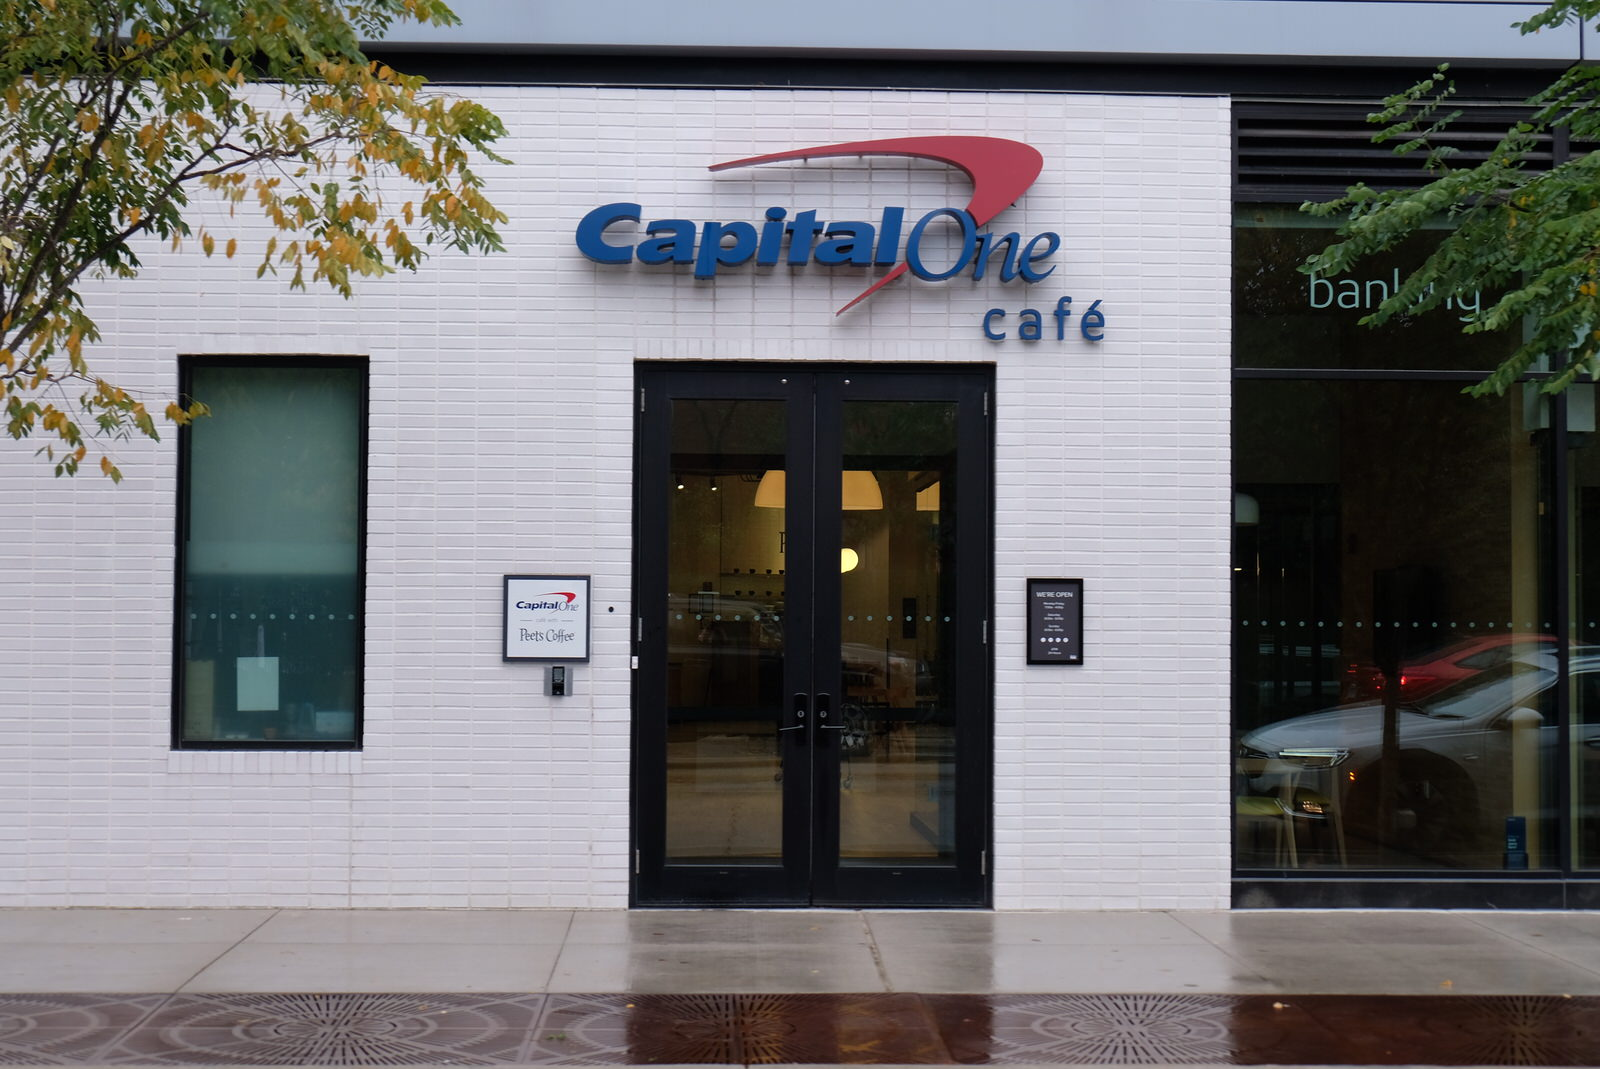 Entrance to a Capital One Cafe in Chicago, Illinois.